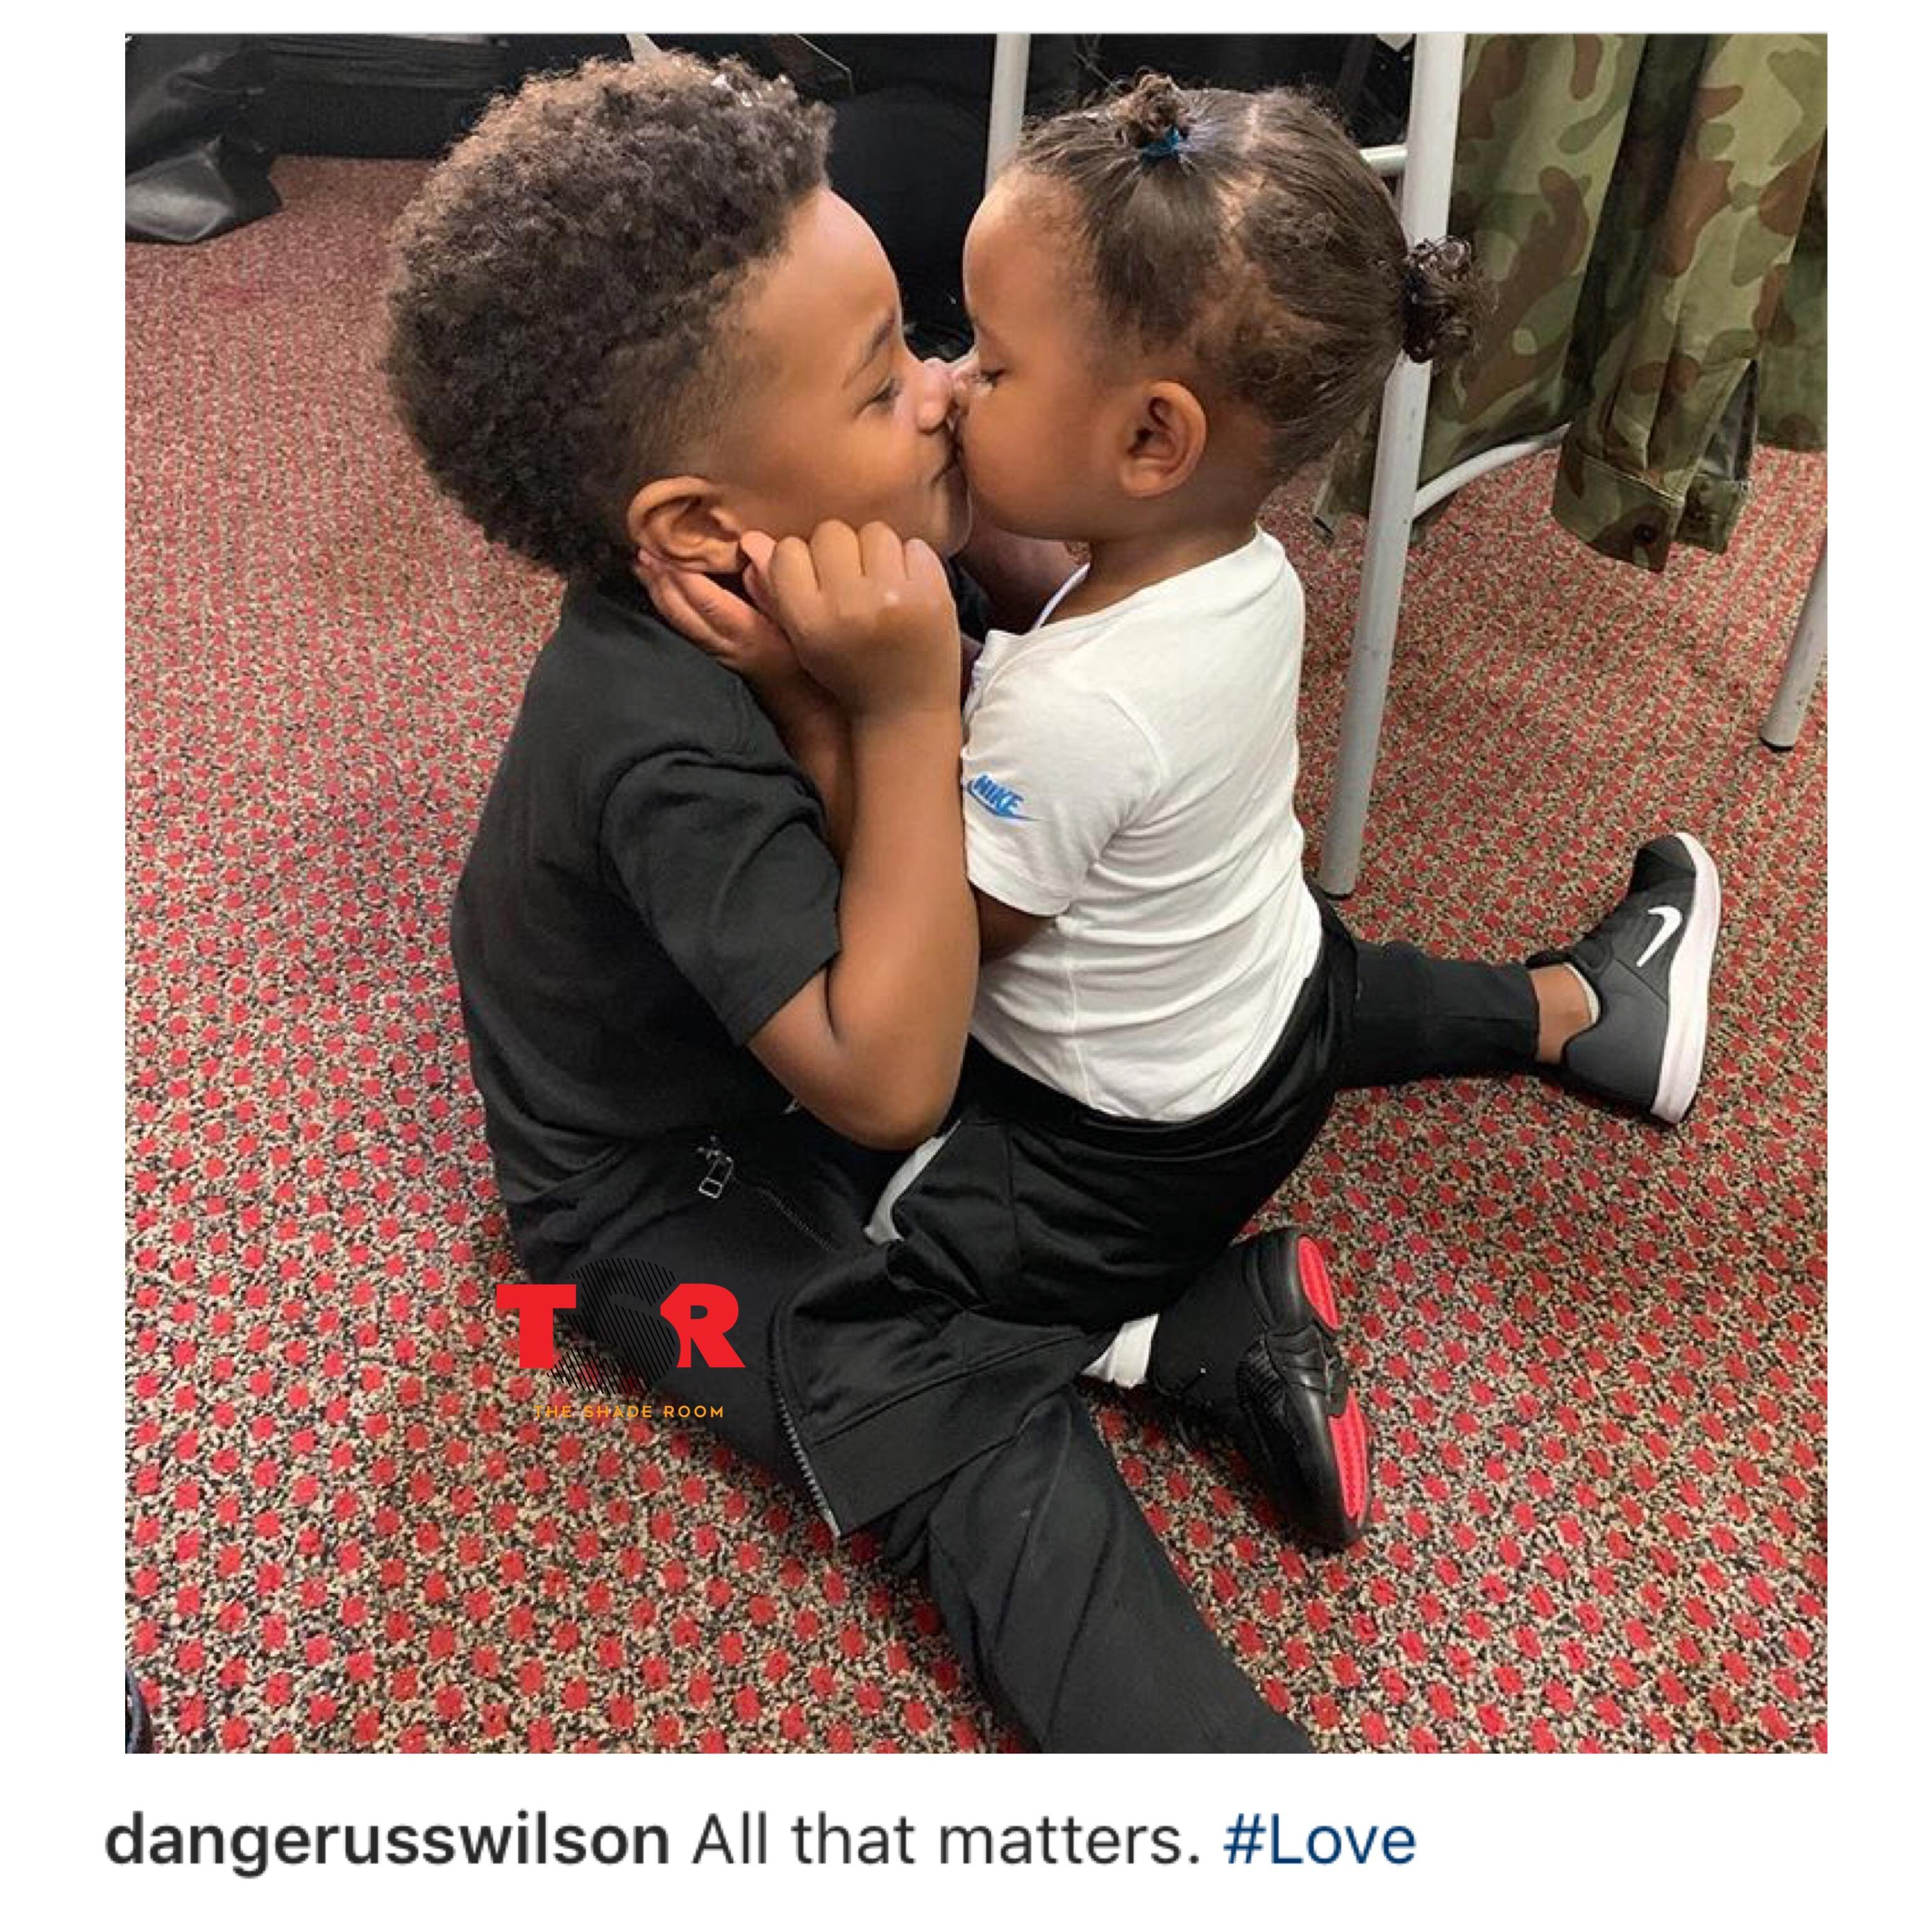 Sibling love Ciara and Russell Wilson